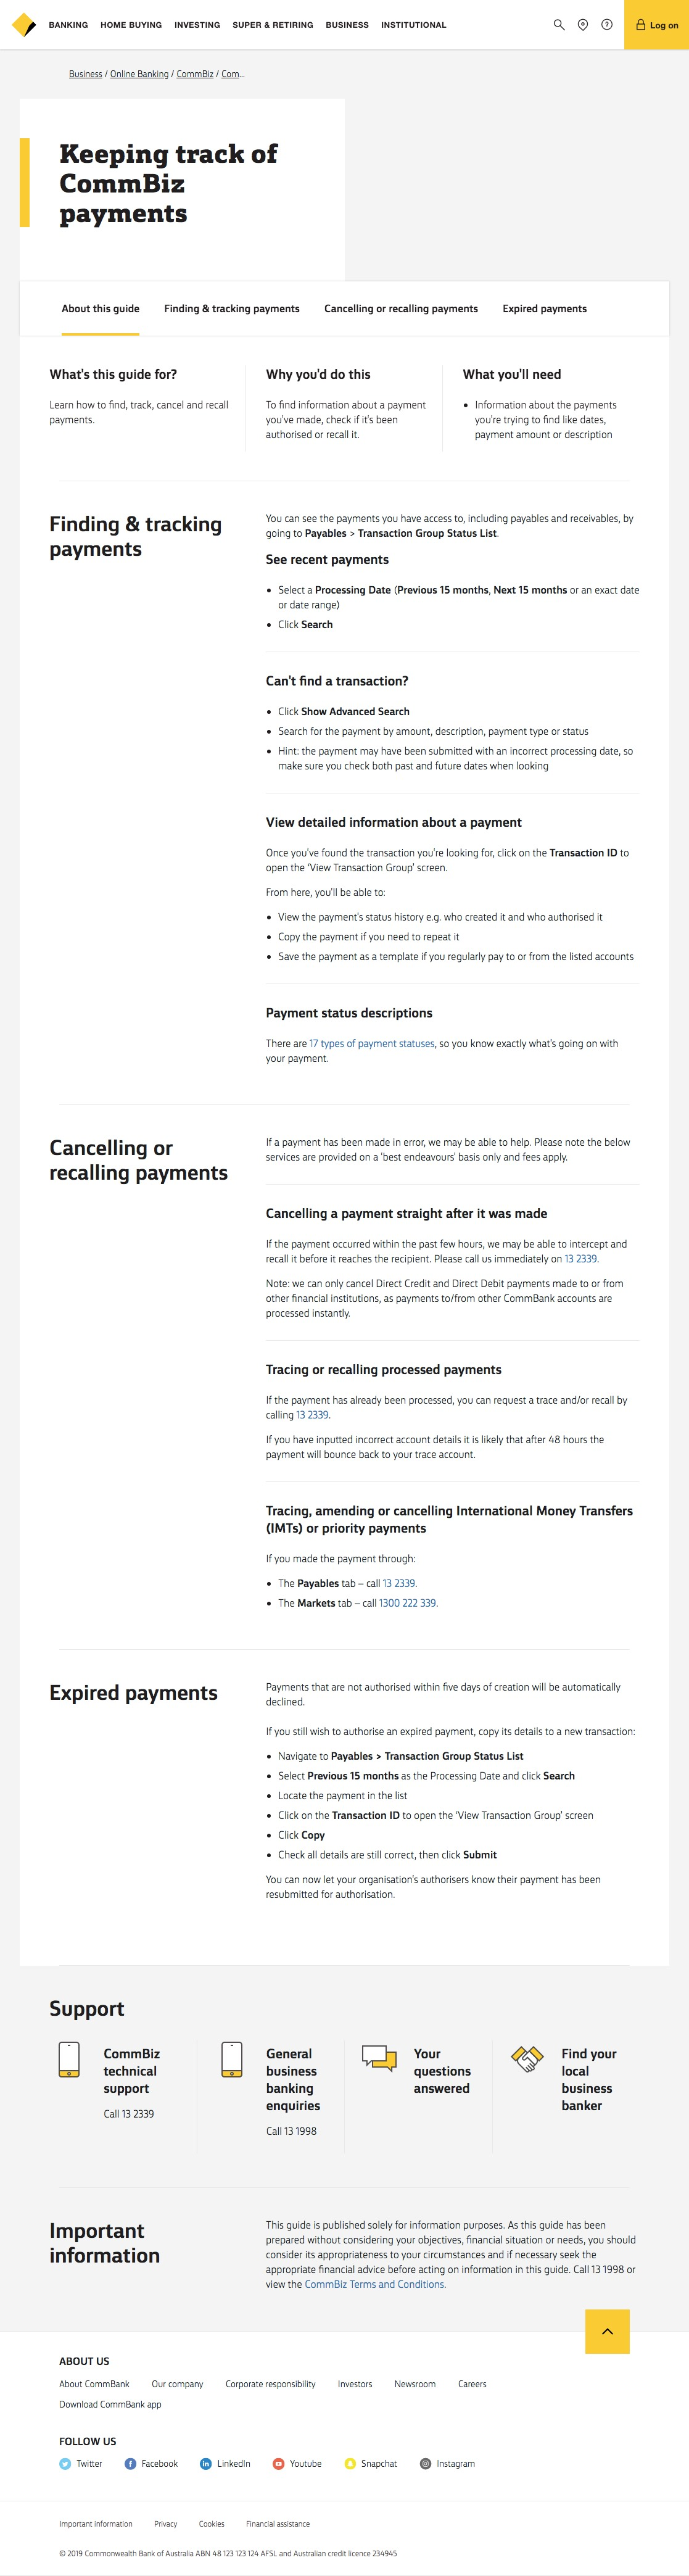 CommBank - Keeping track of payments - CommBiz user guide - CommBank